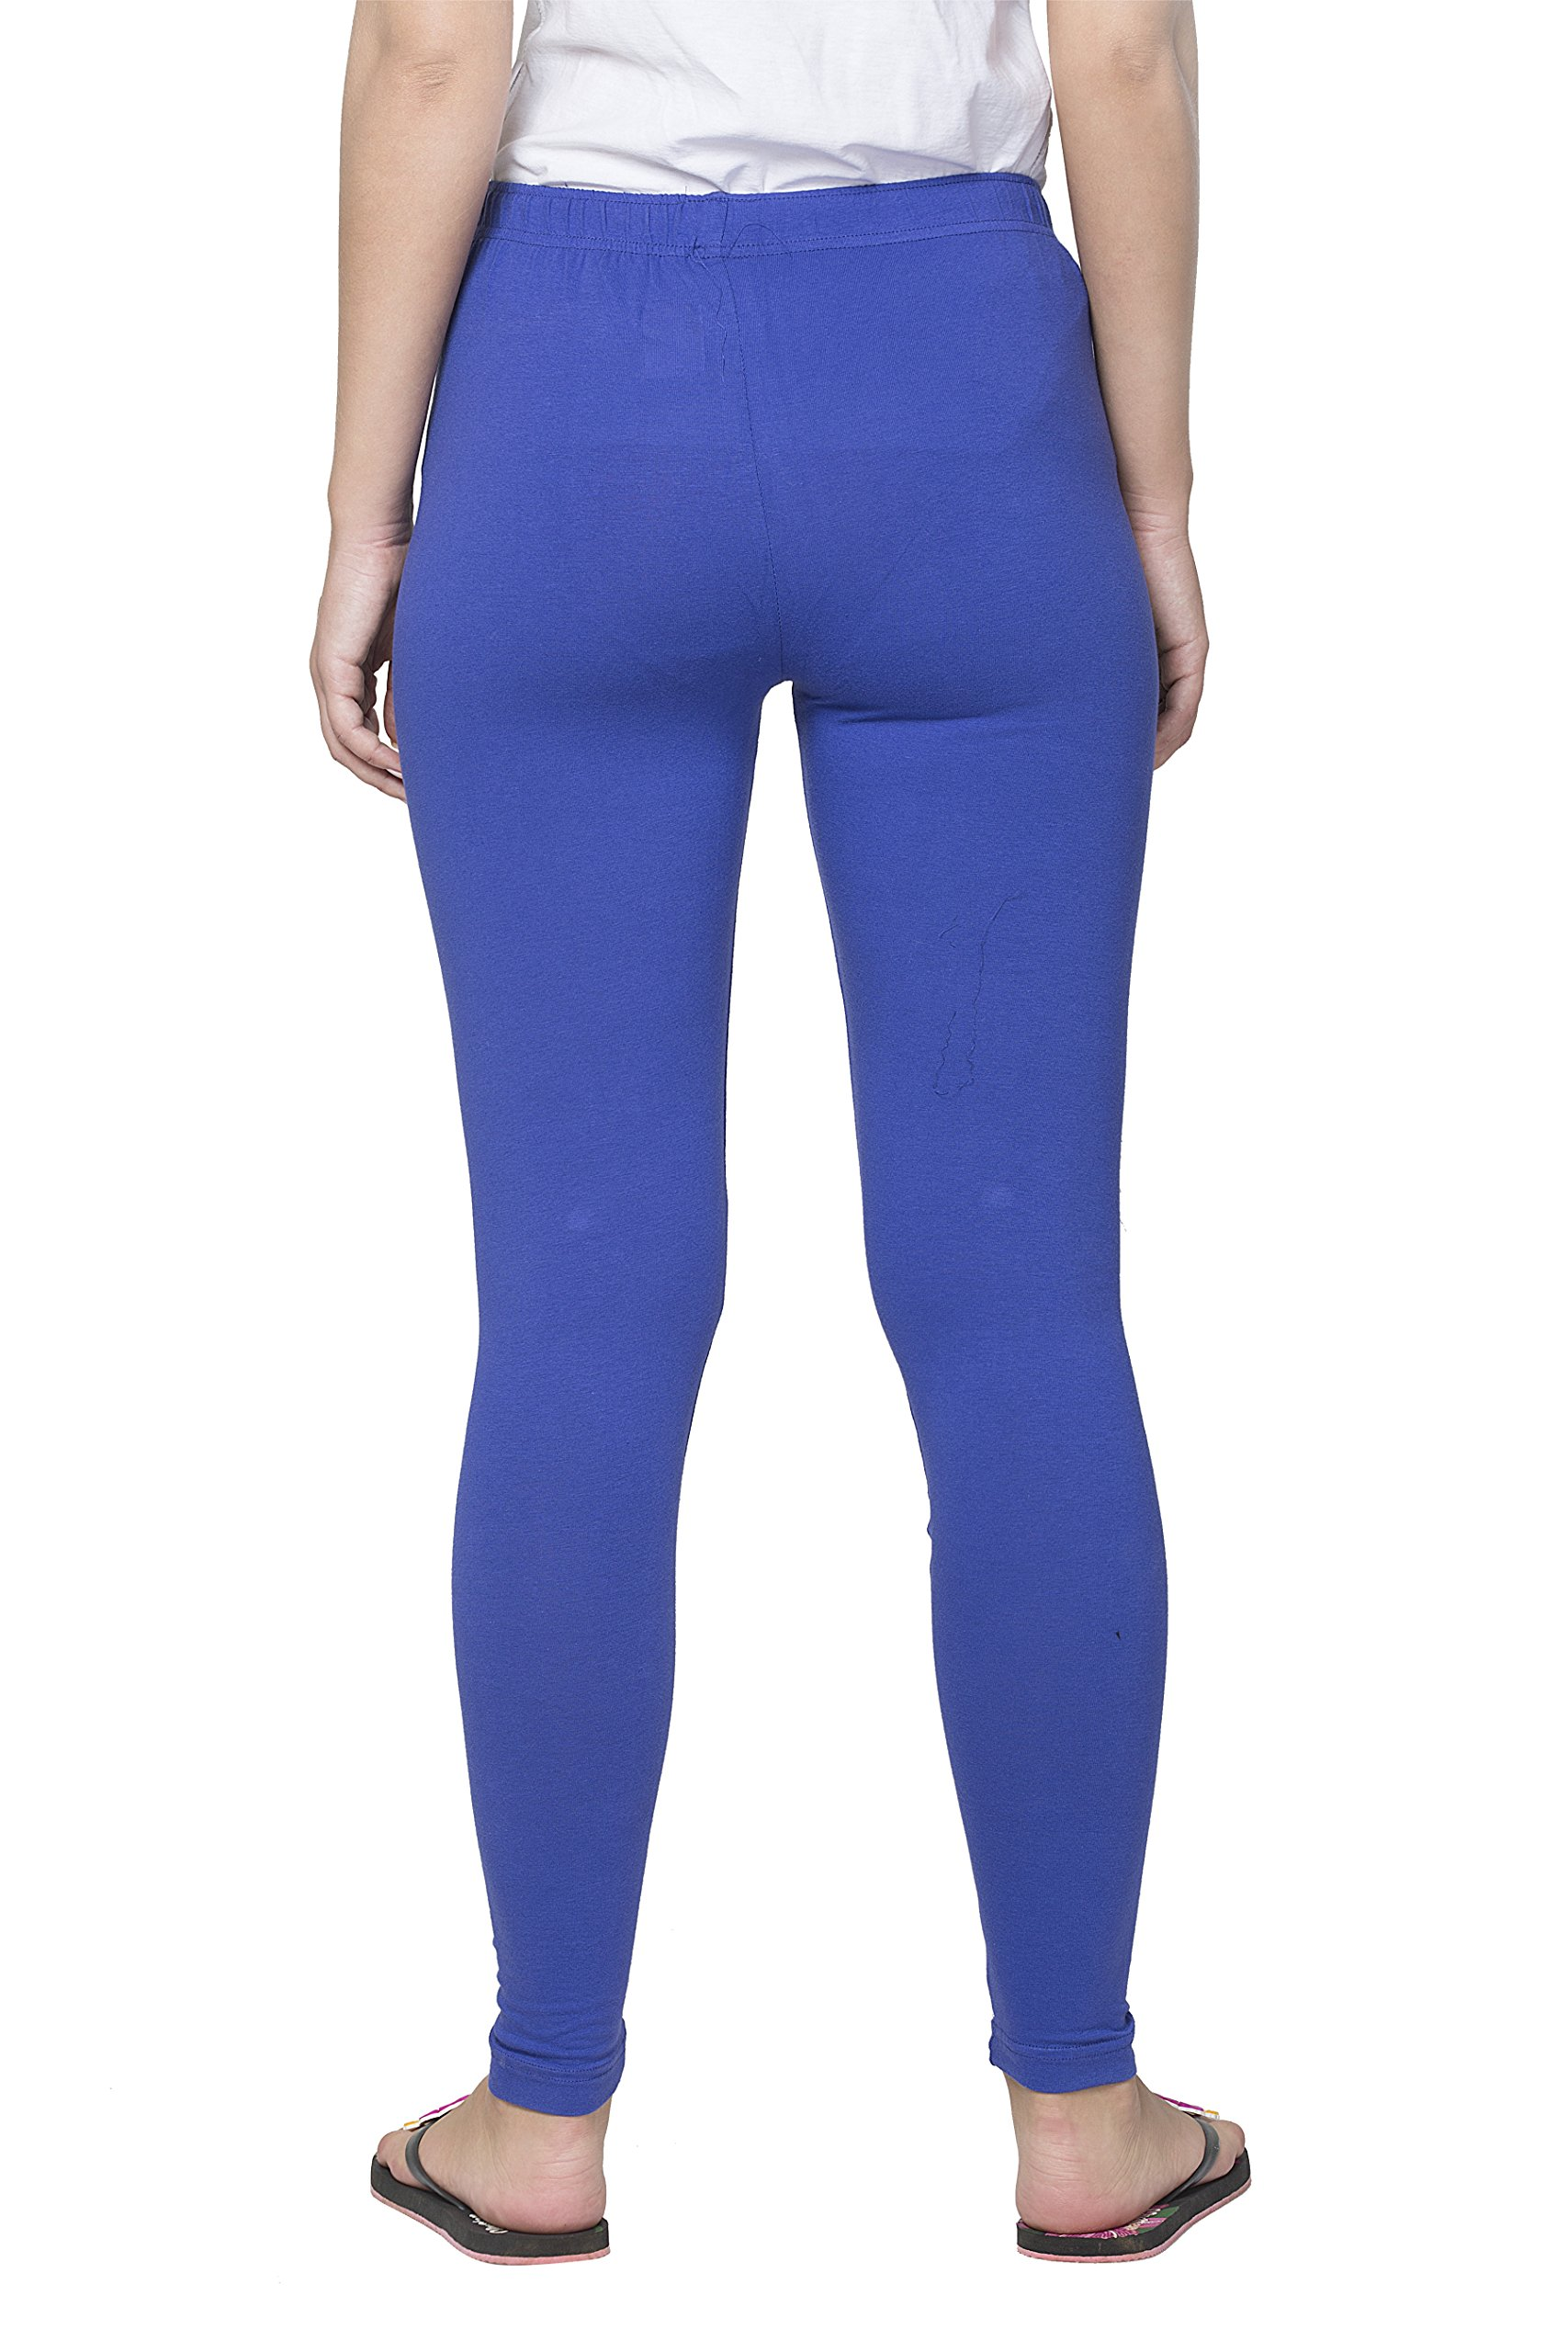 Clifton Women's Cotton Spandex Fine Jersey Leggings Pack Of 6-Assorted-4-XL by Clifton (Image #3)